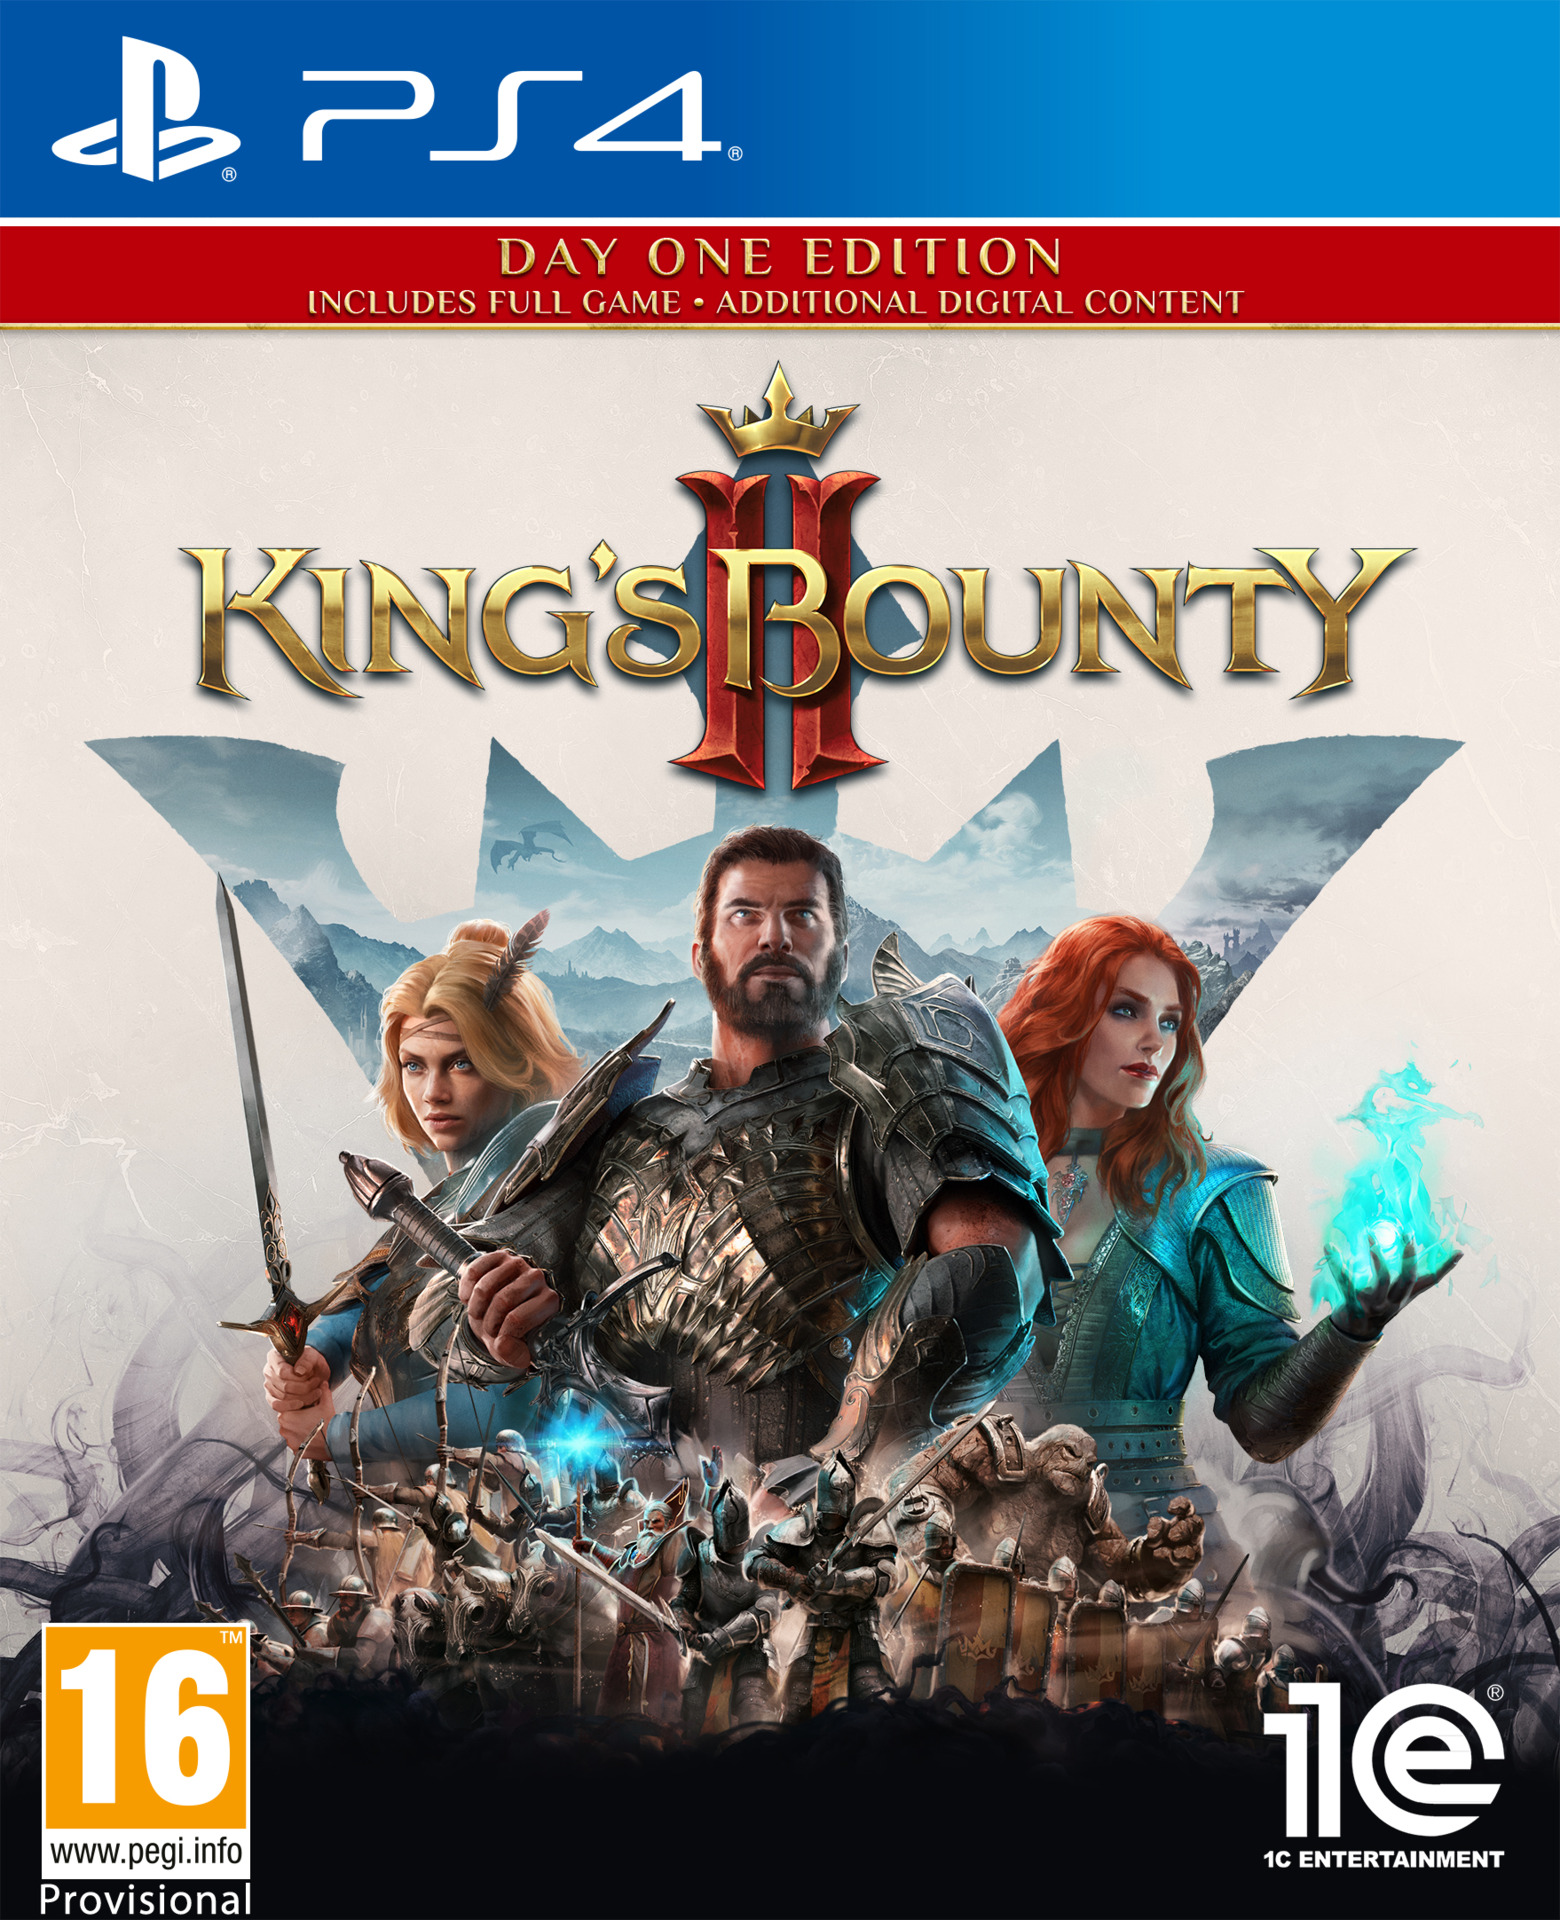 King's Bounty 2 (PS4)